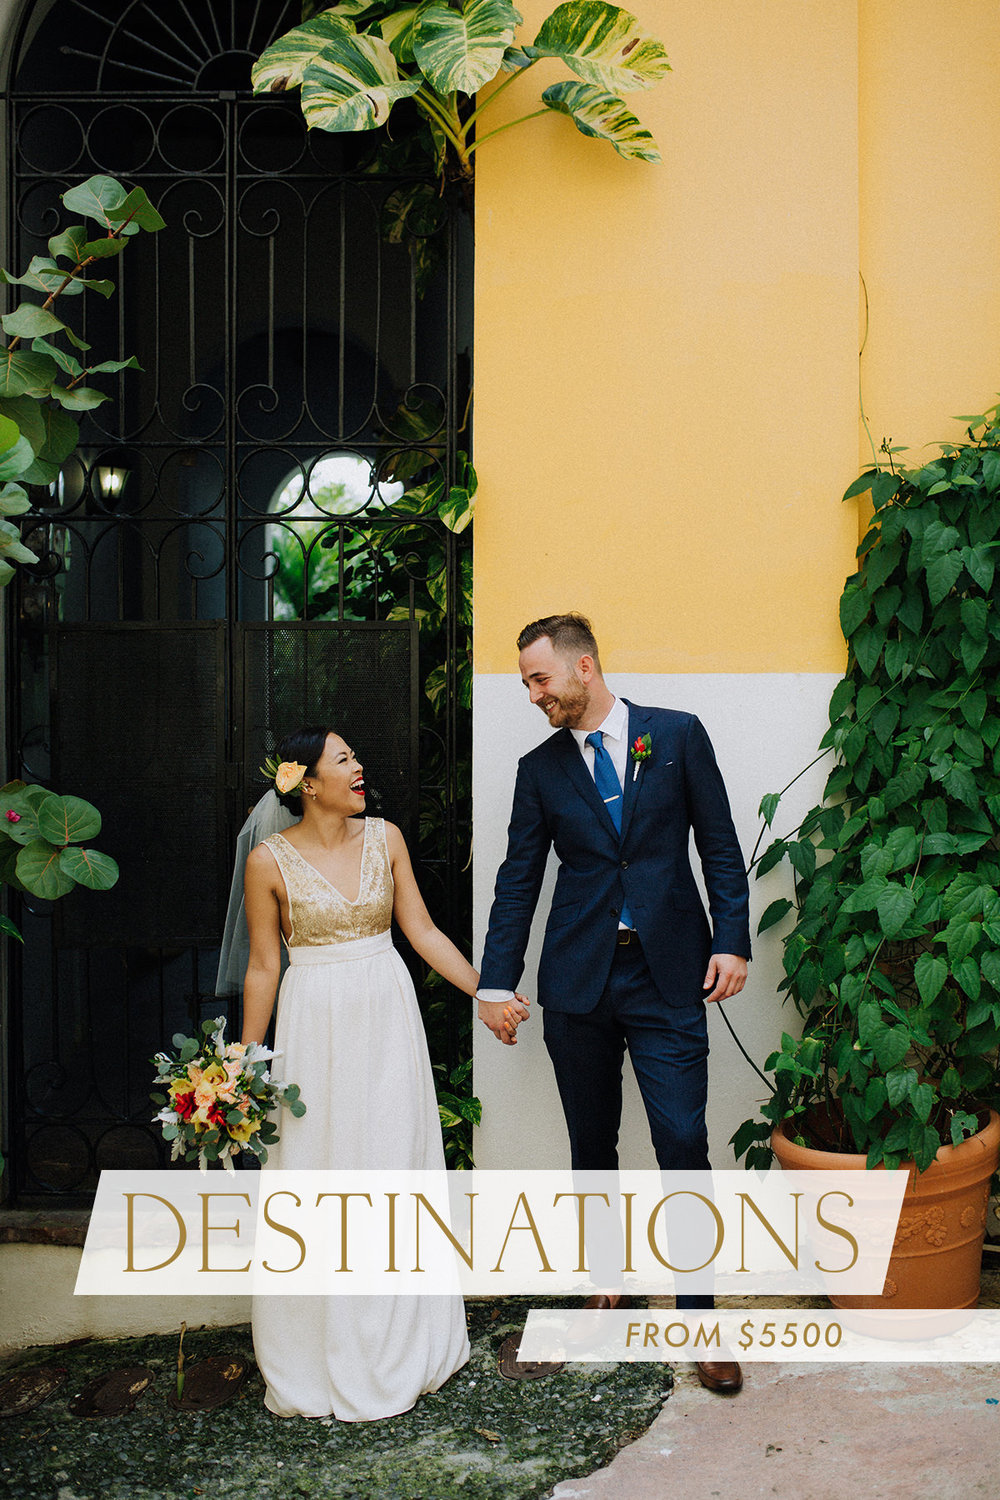 Mexico Wedding Photographer, Mexican Destination wedding photos, Tulum wedding photography, Sayulita Wedding Photographer, Baja California Wedding Photographer, Cabo Wedding Photography